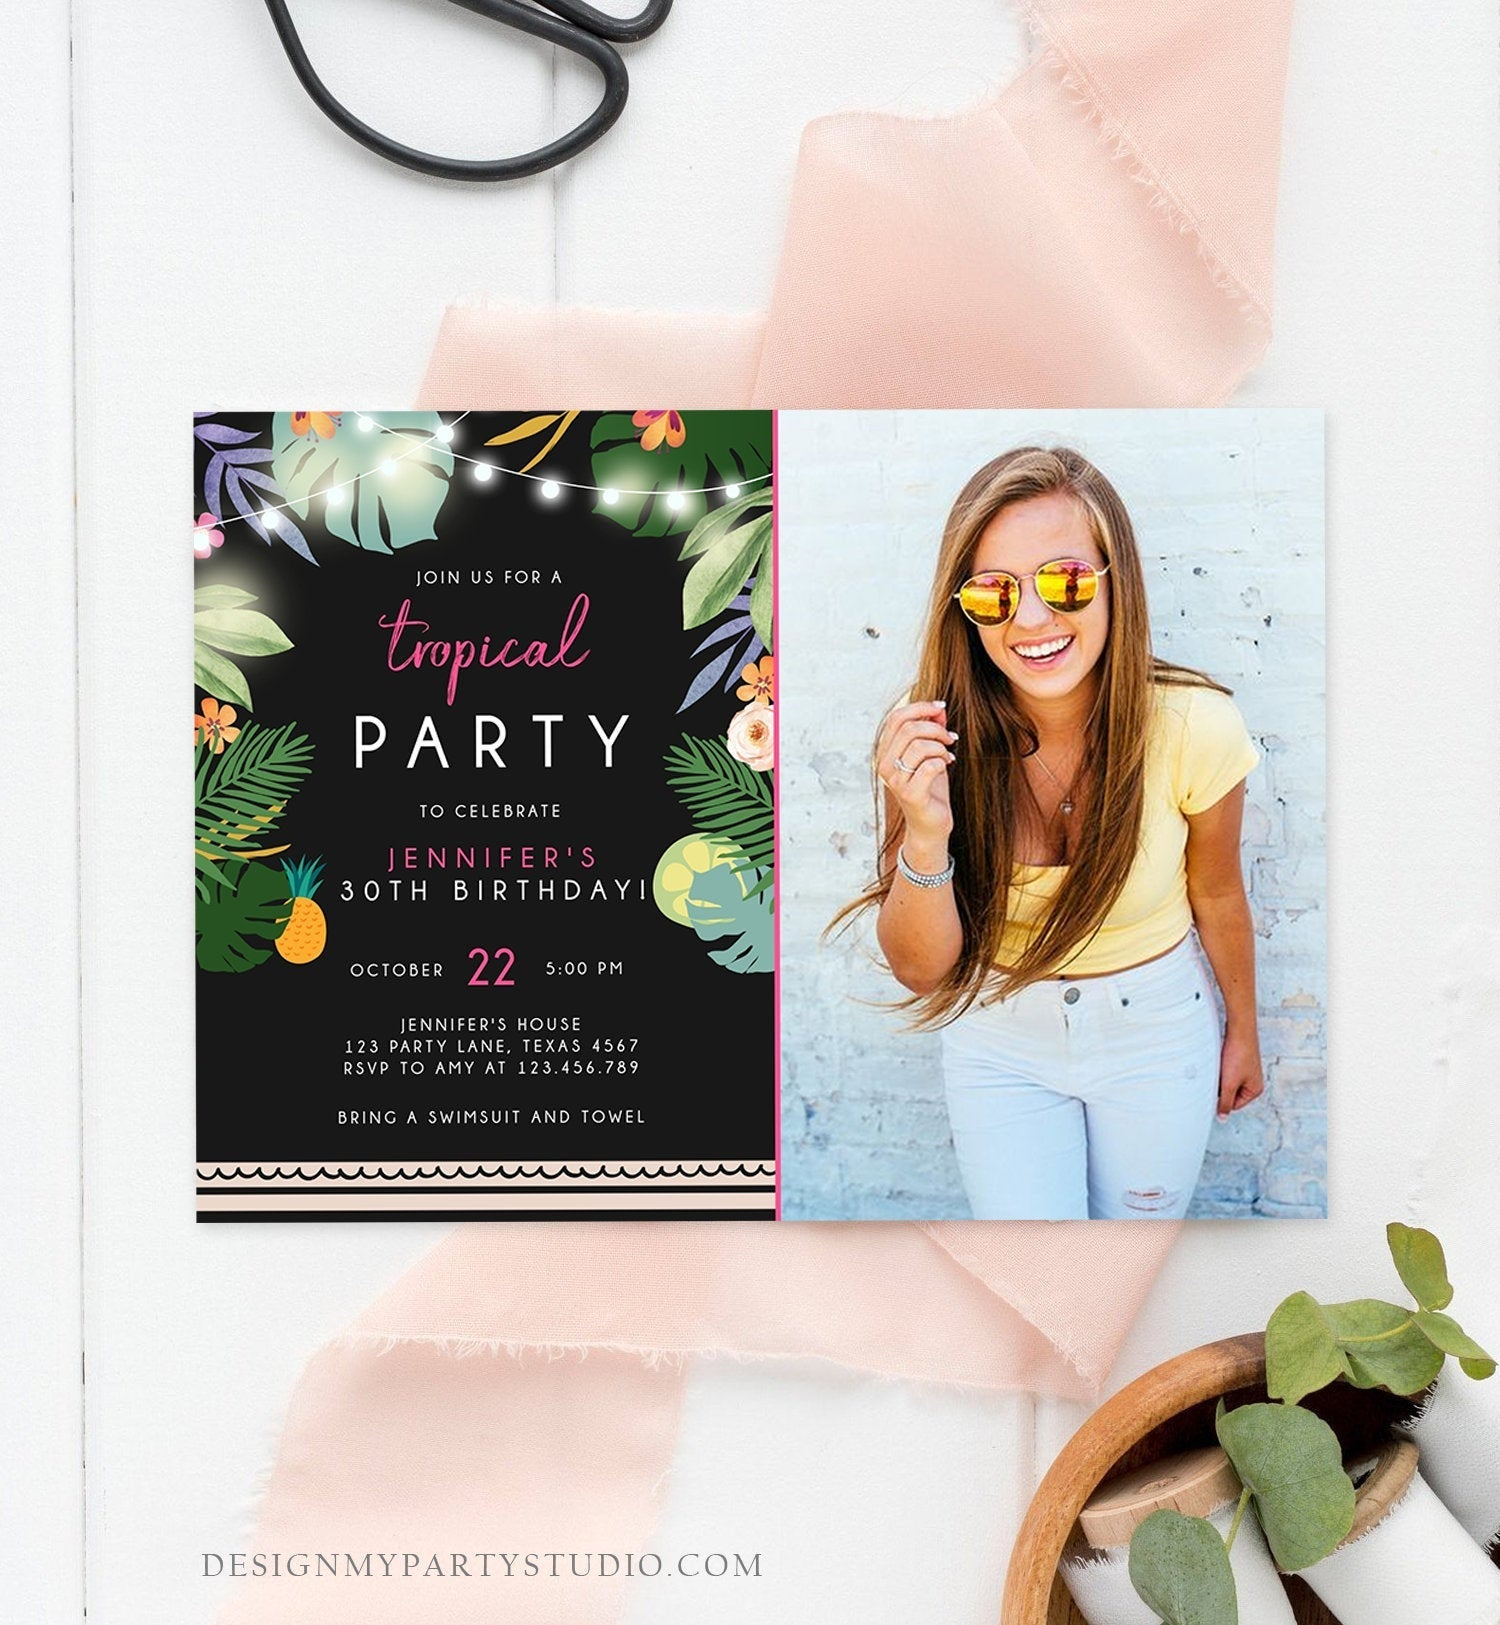 Editable Tropical Birthday Invitation Tropical Party Adult 30th 40th Birthday Pink Woman Palm Leaves Hawaiian Printable Template Corjl 0183